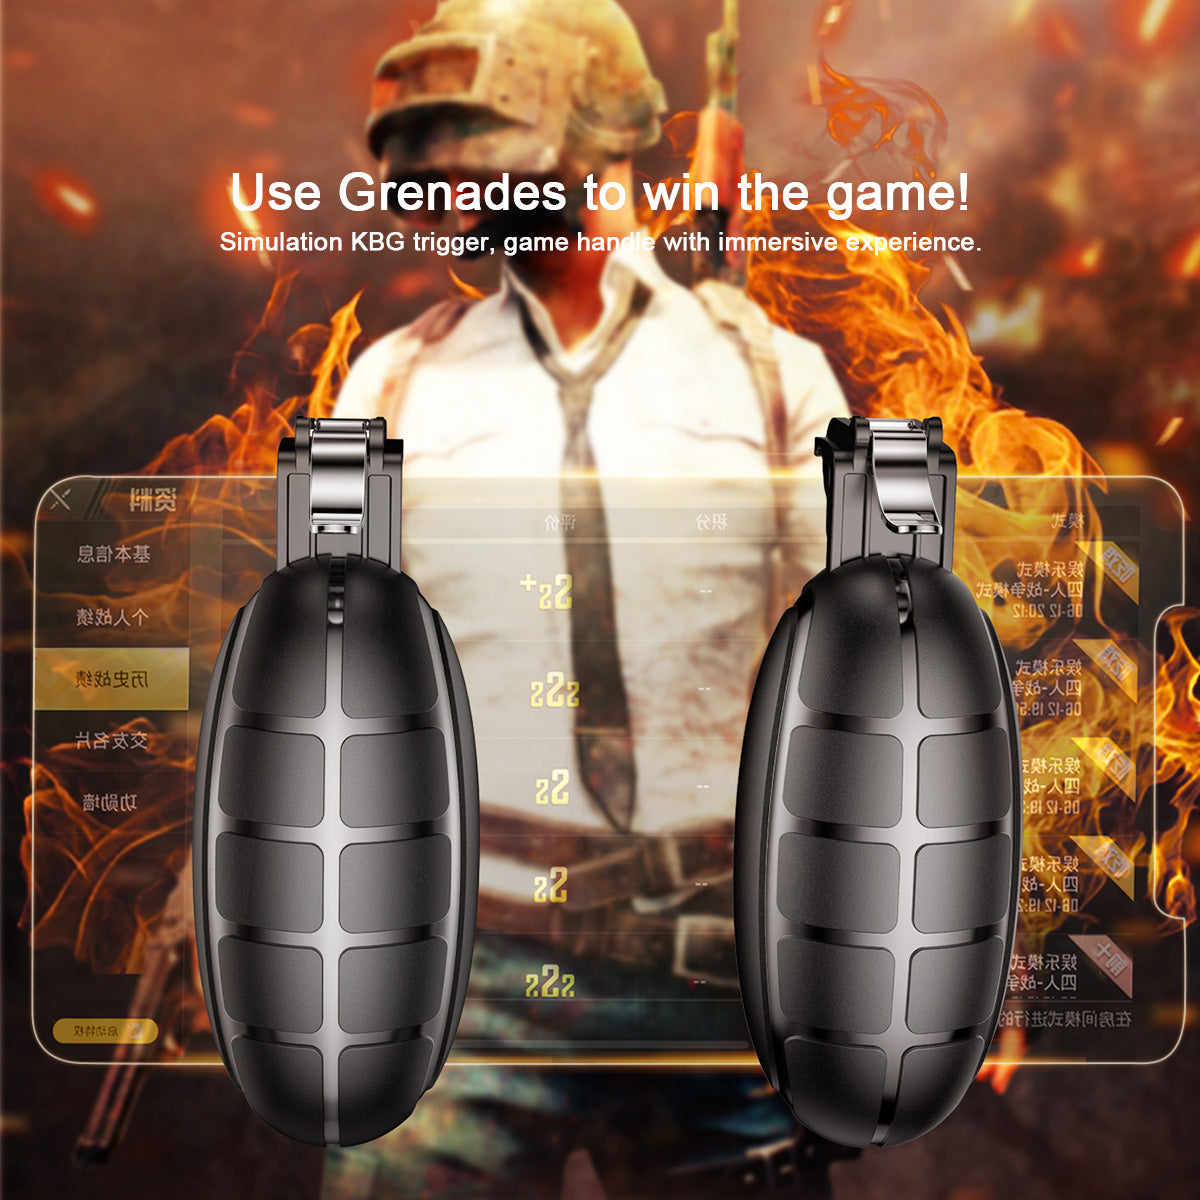 Baseus Grenade Remote controller for iphone games Black.